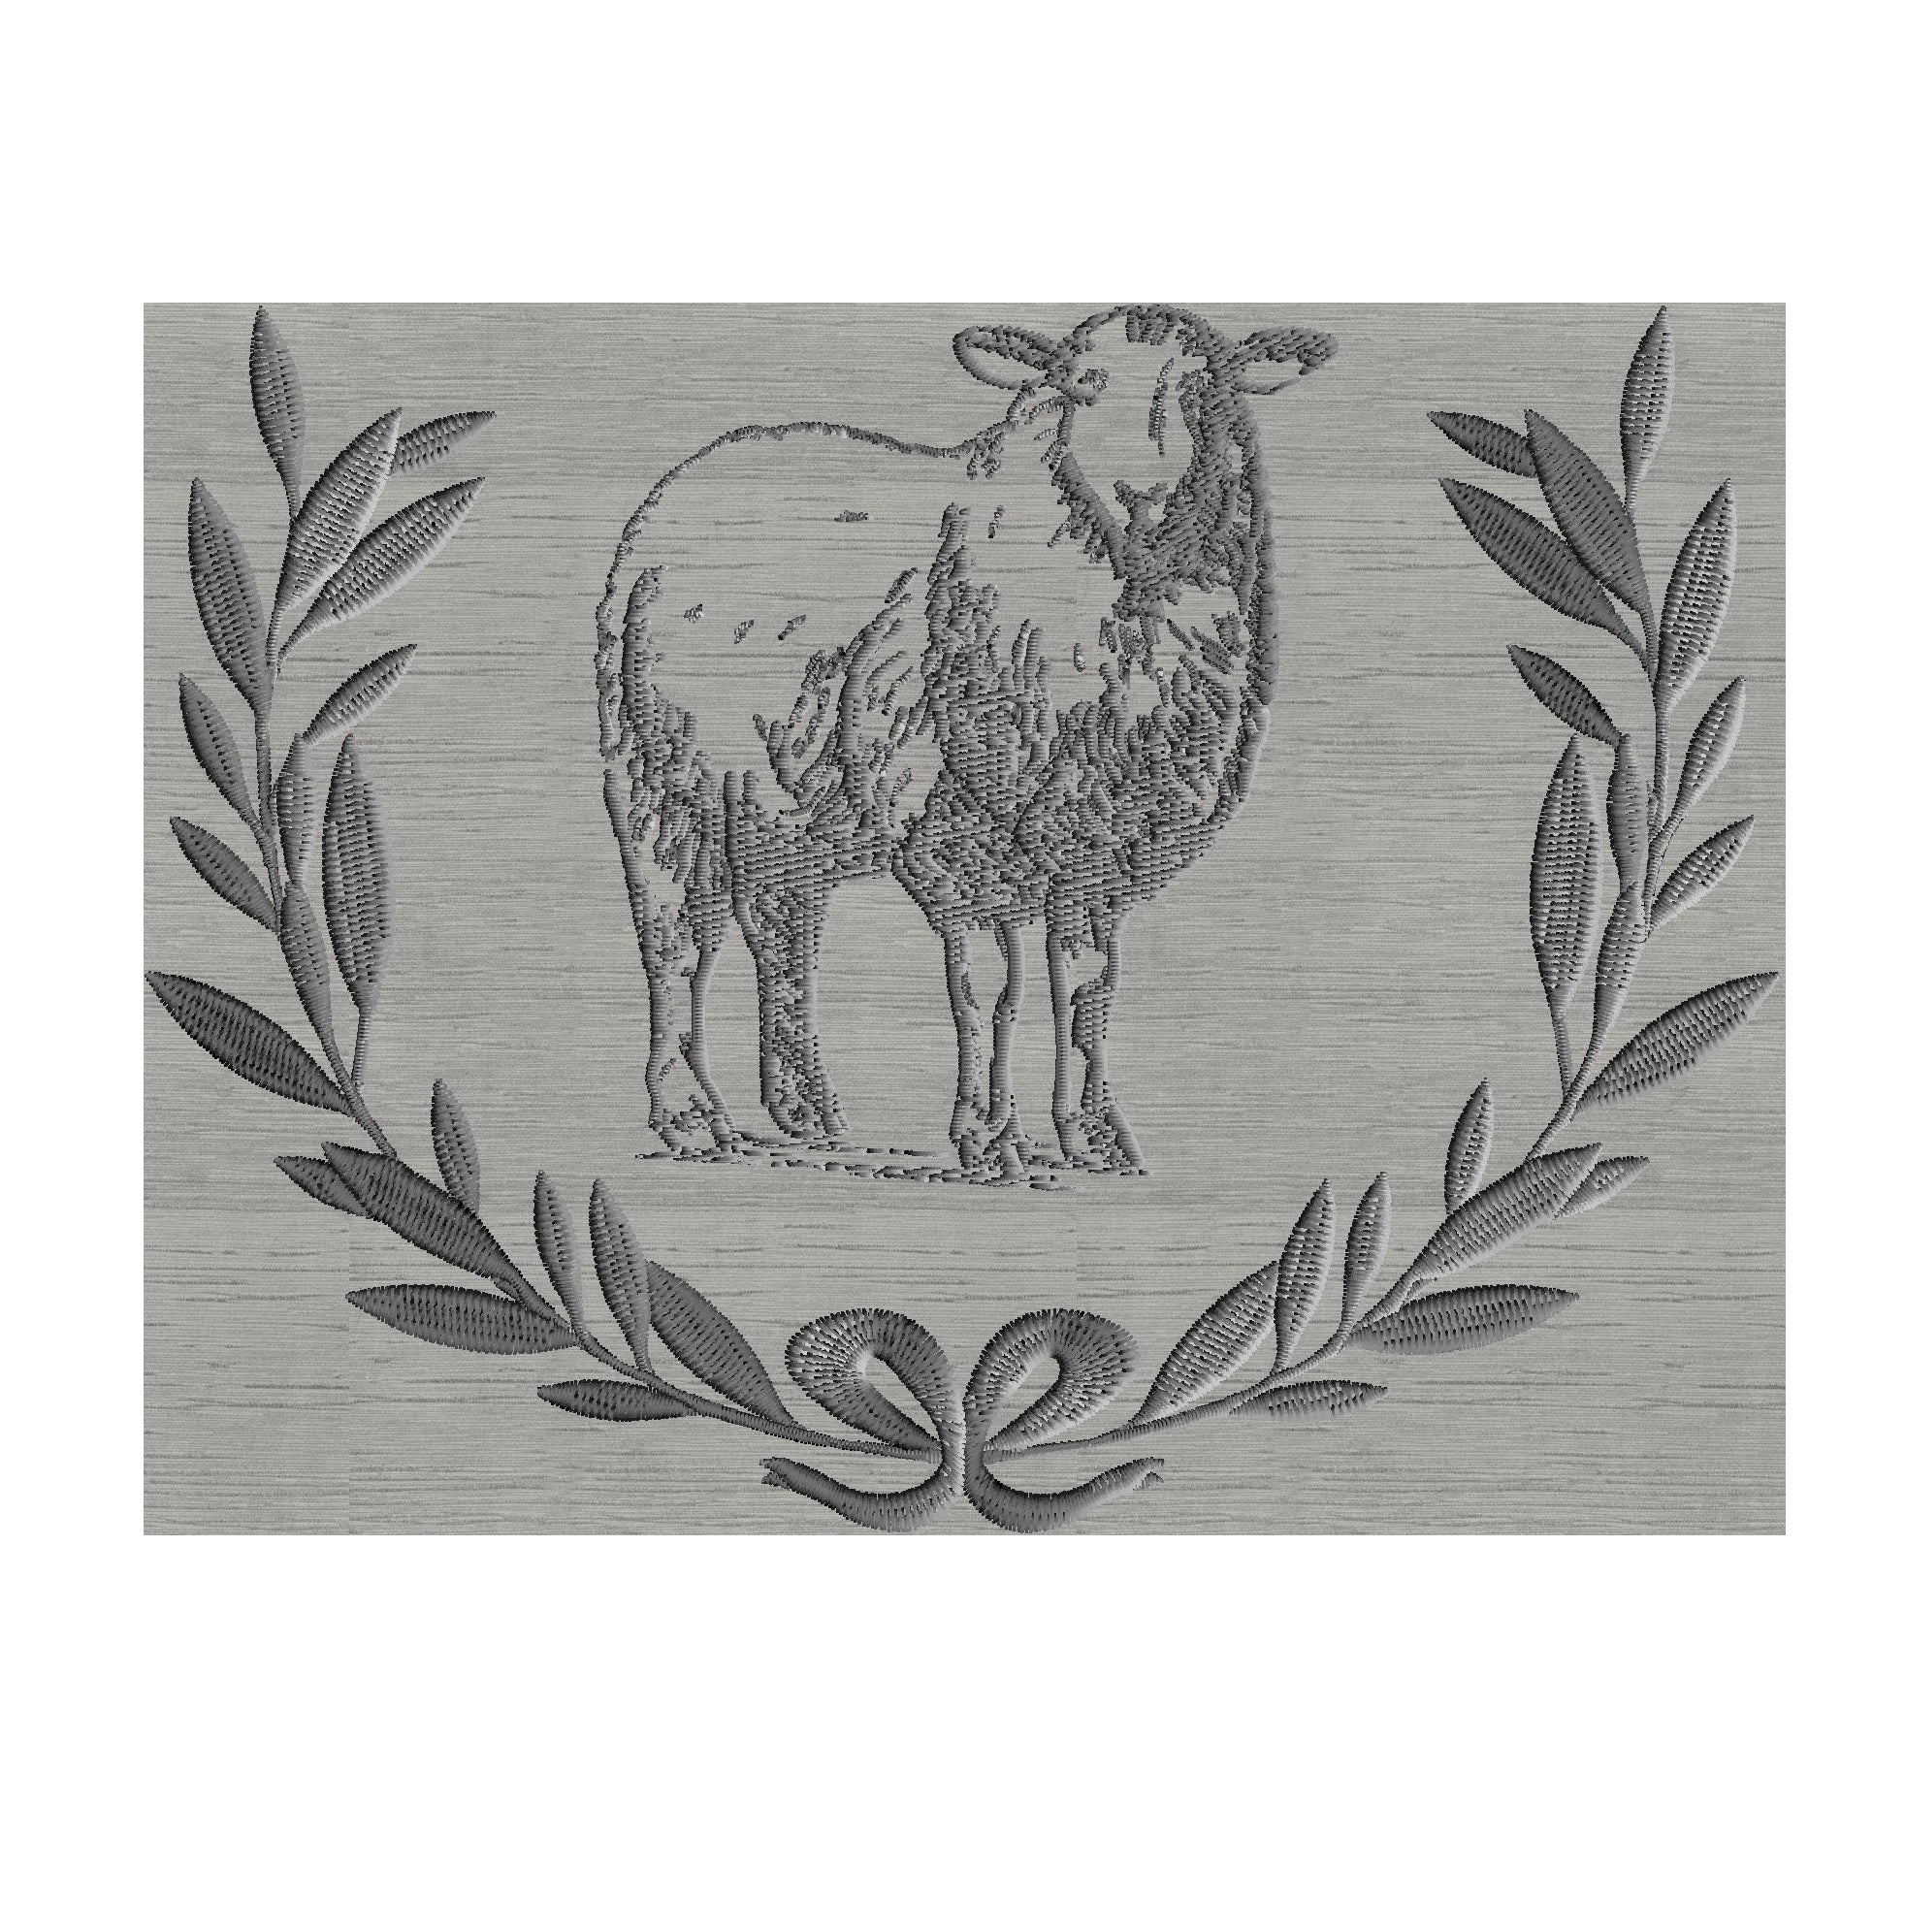 Sheep Lamb with Laurel wreath - Embroidery DESIGN FILE  Instant download 2 sizes & colors Hus Dst Jef Pes Exp Vp3 Easter Passover sheep lamb